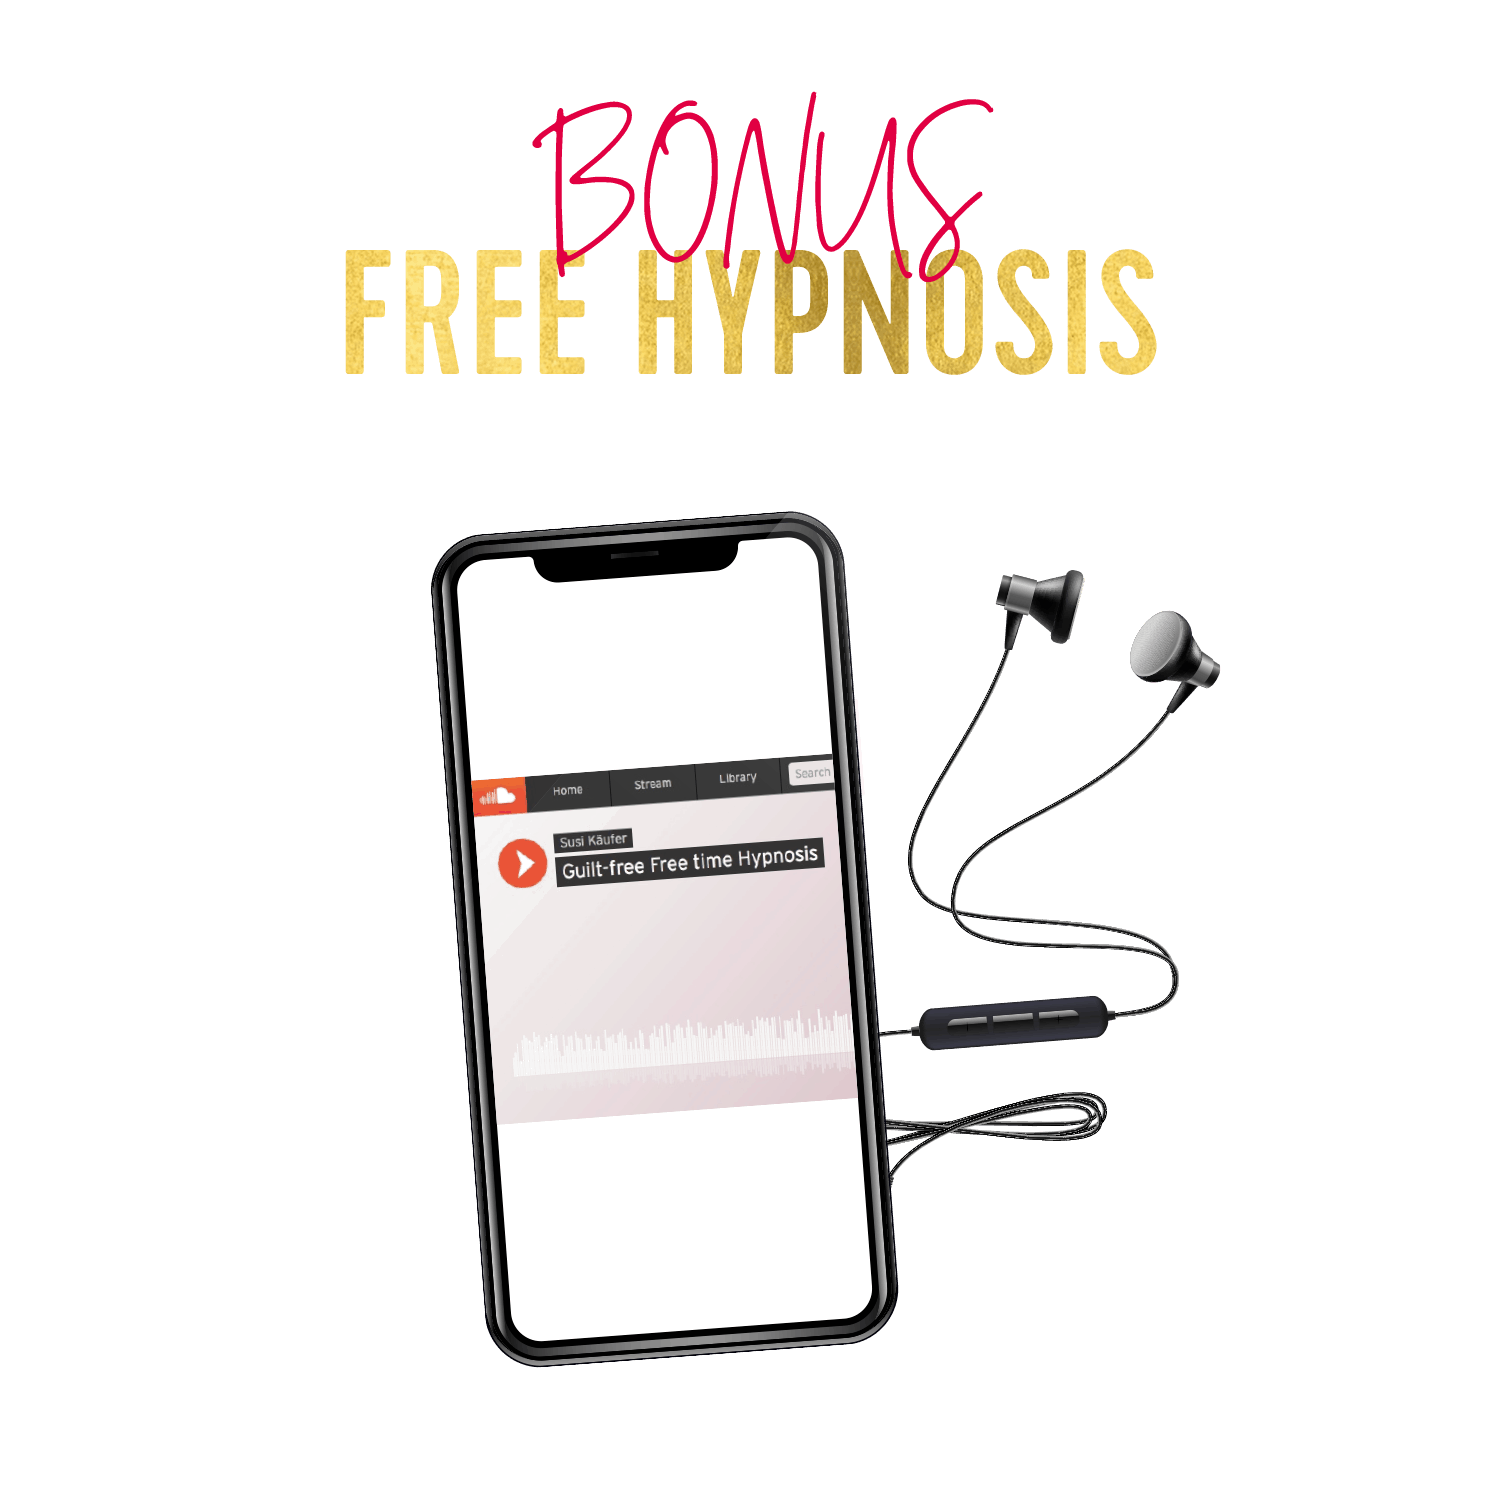 Bonus Hypnosis Graphic